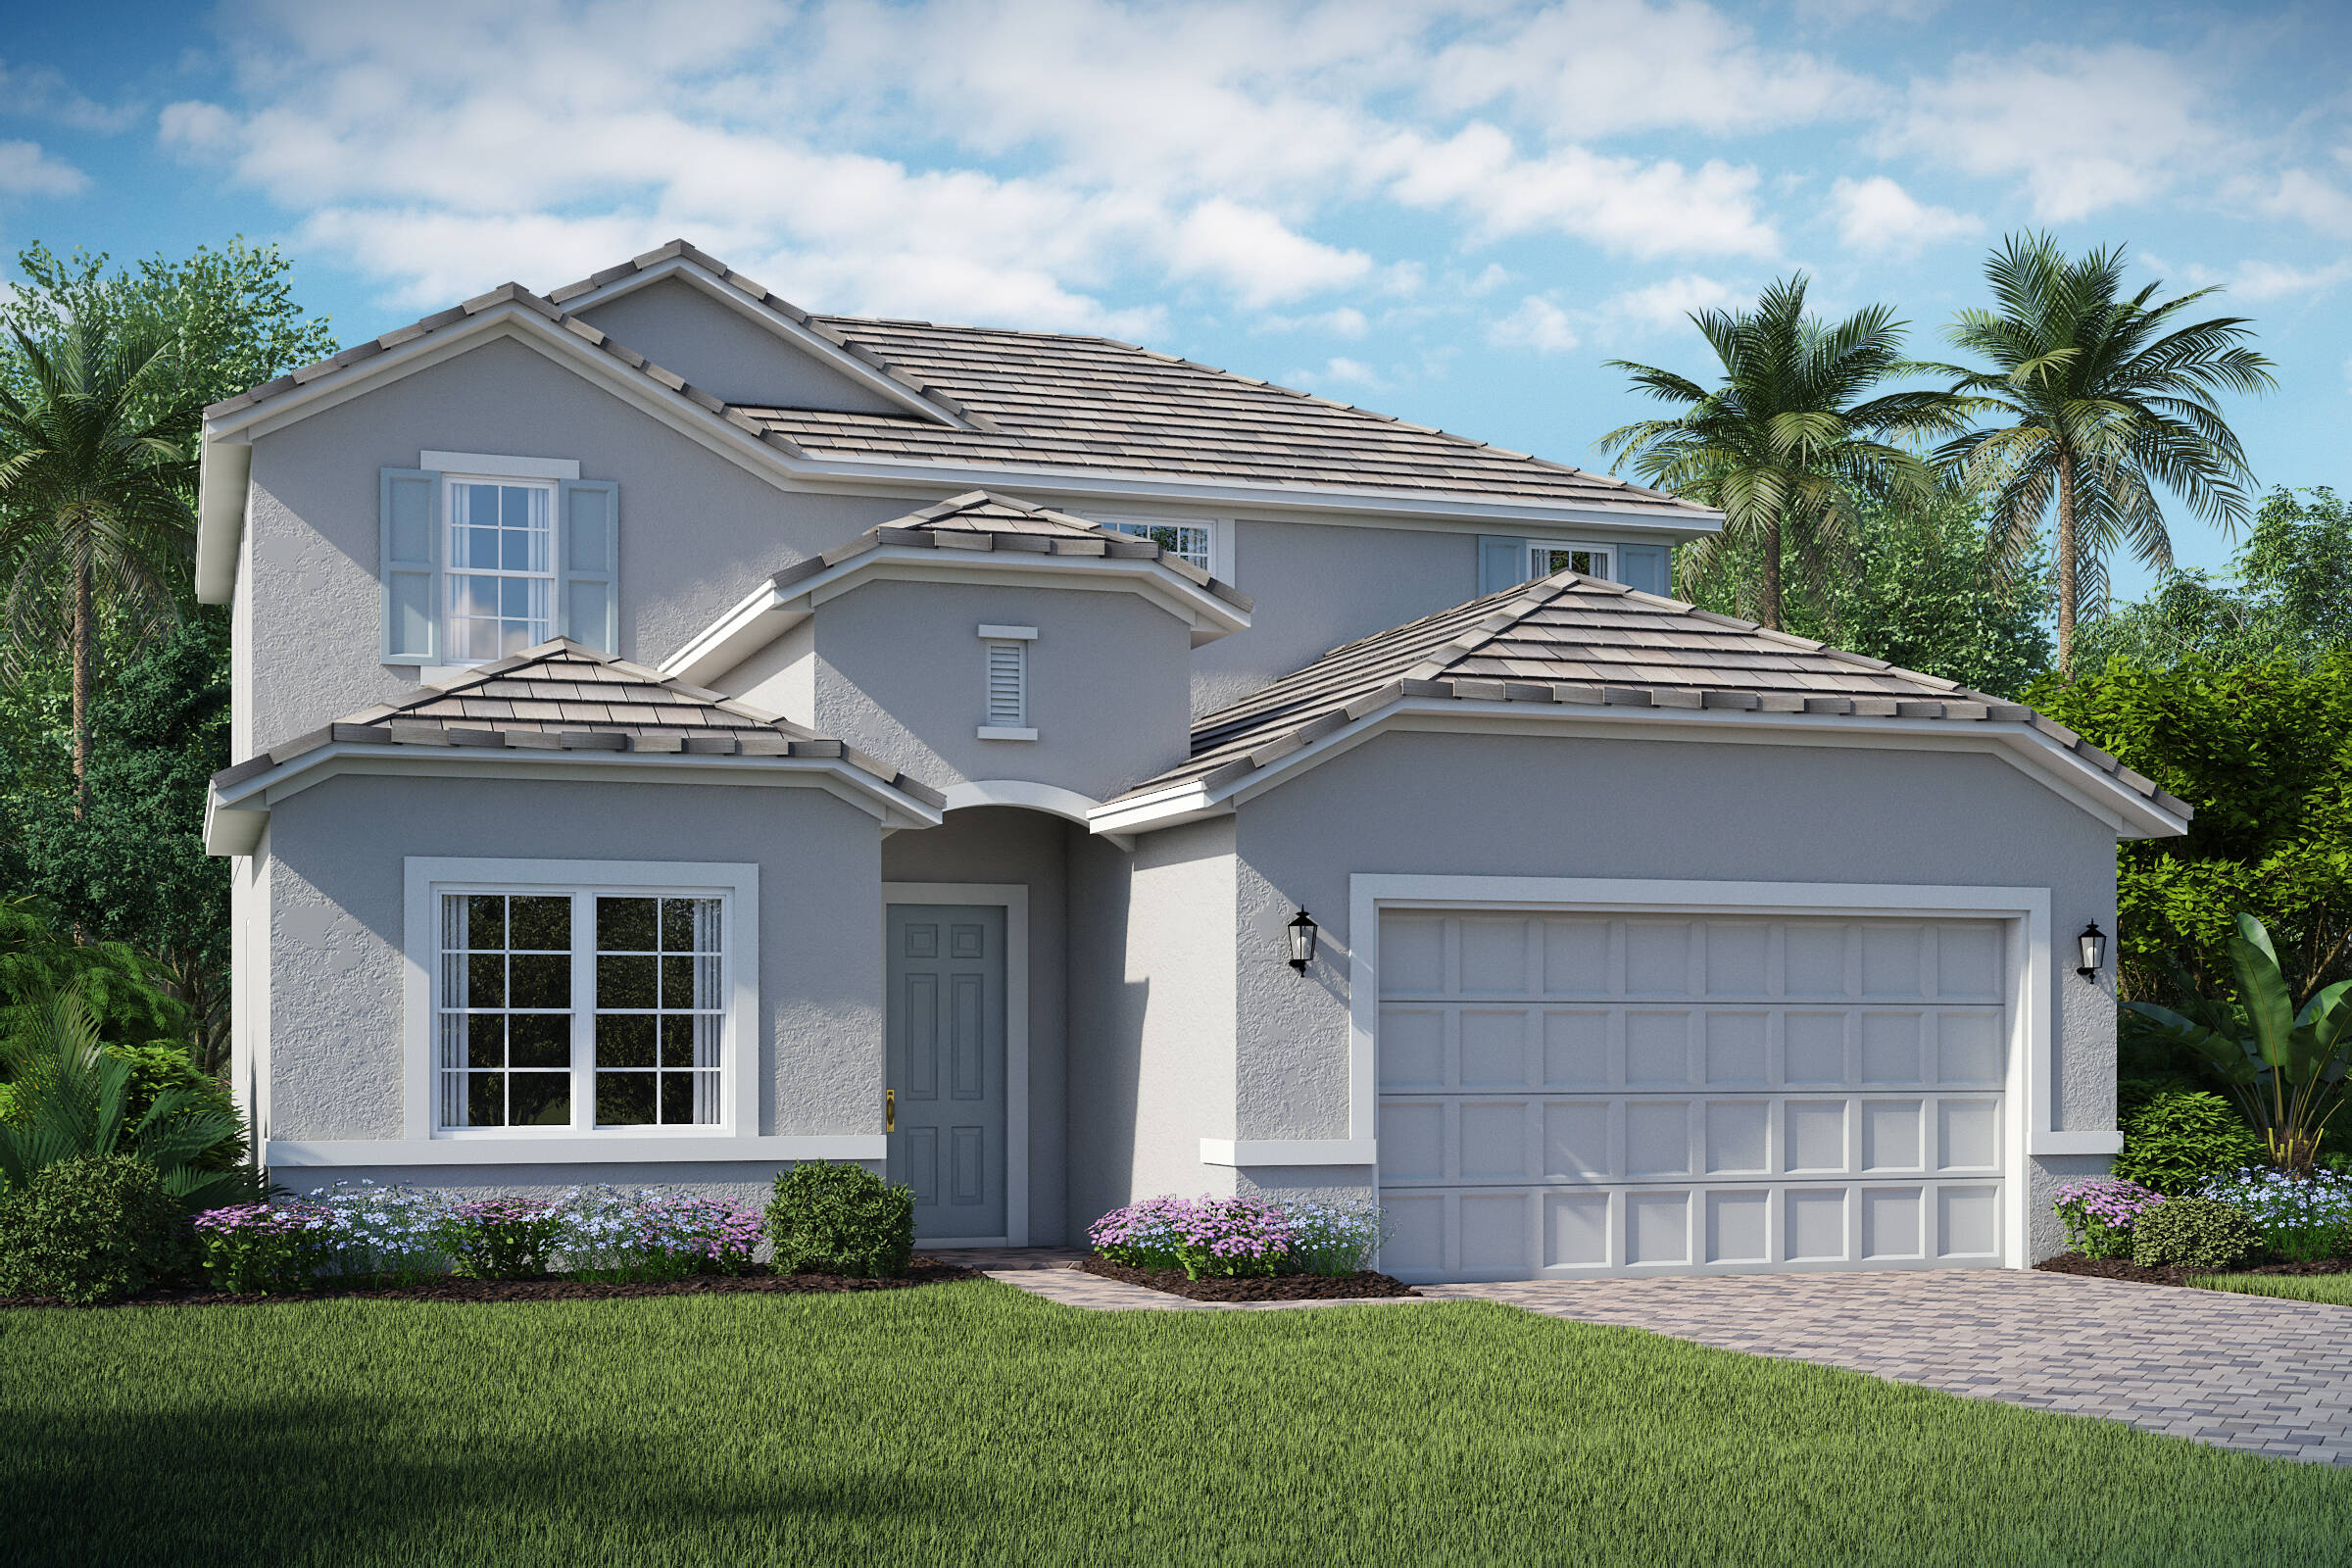 Bessemer B exterior lake florence preserve new homes in orlando florida